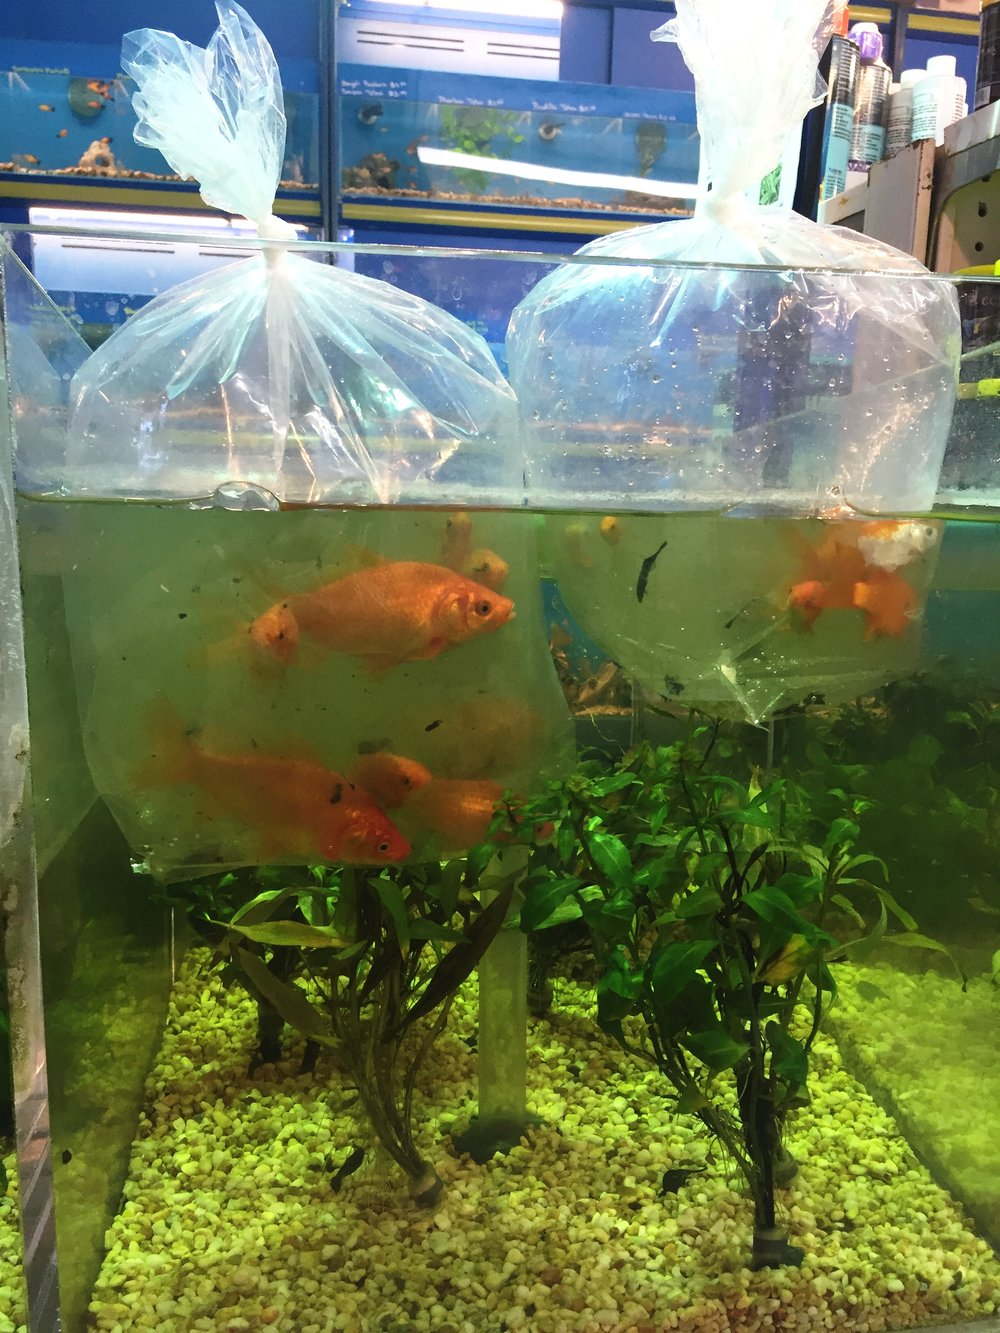 Goldfish being introduced to their new aquarium home.